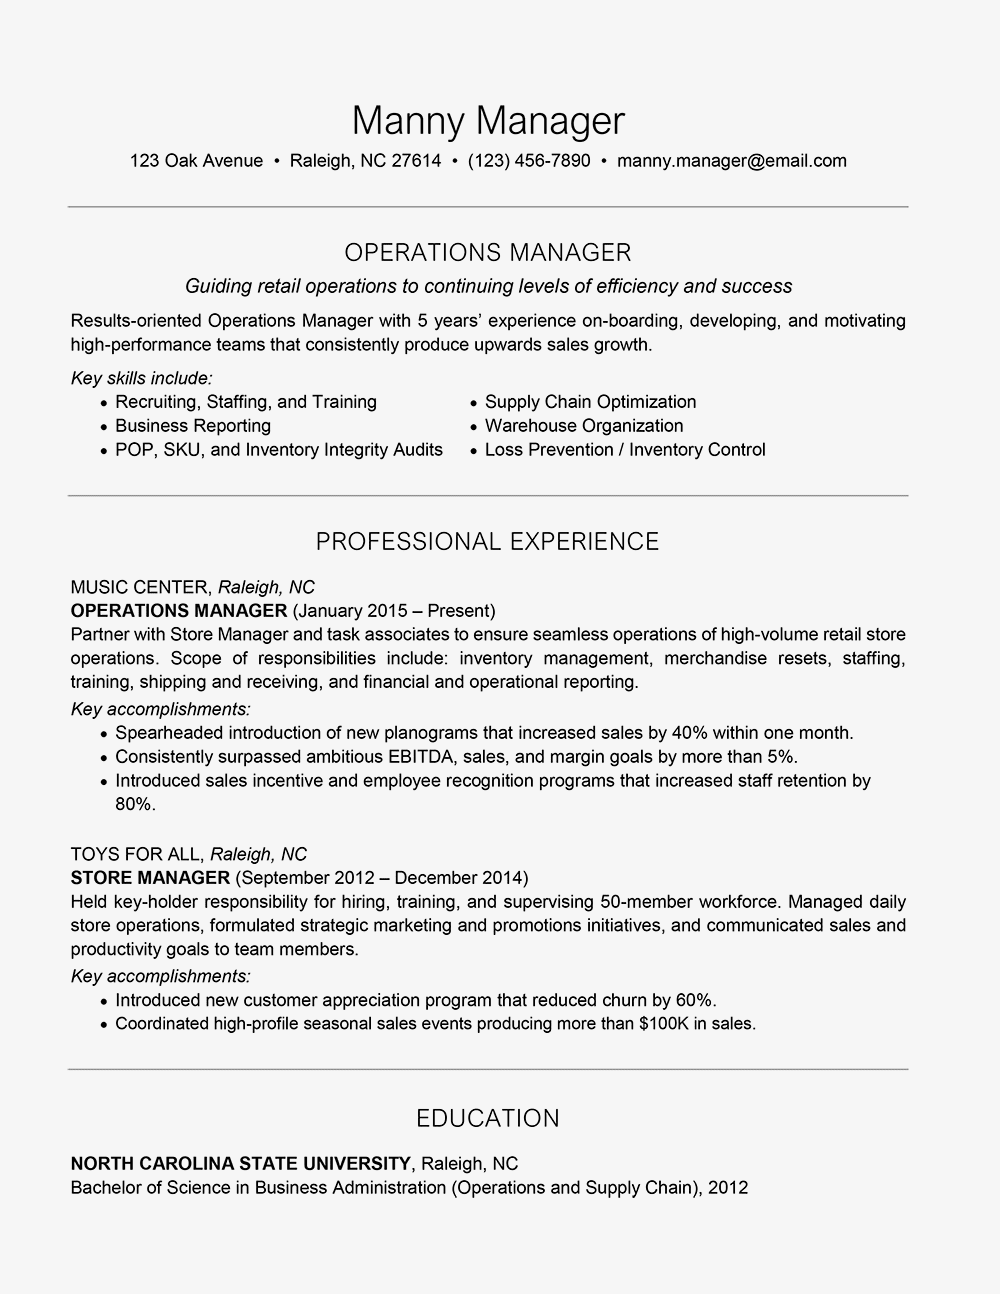 management resume examples and writing tips general manager resume